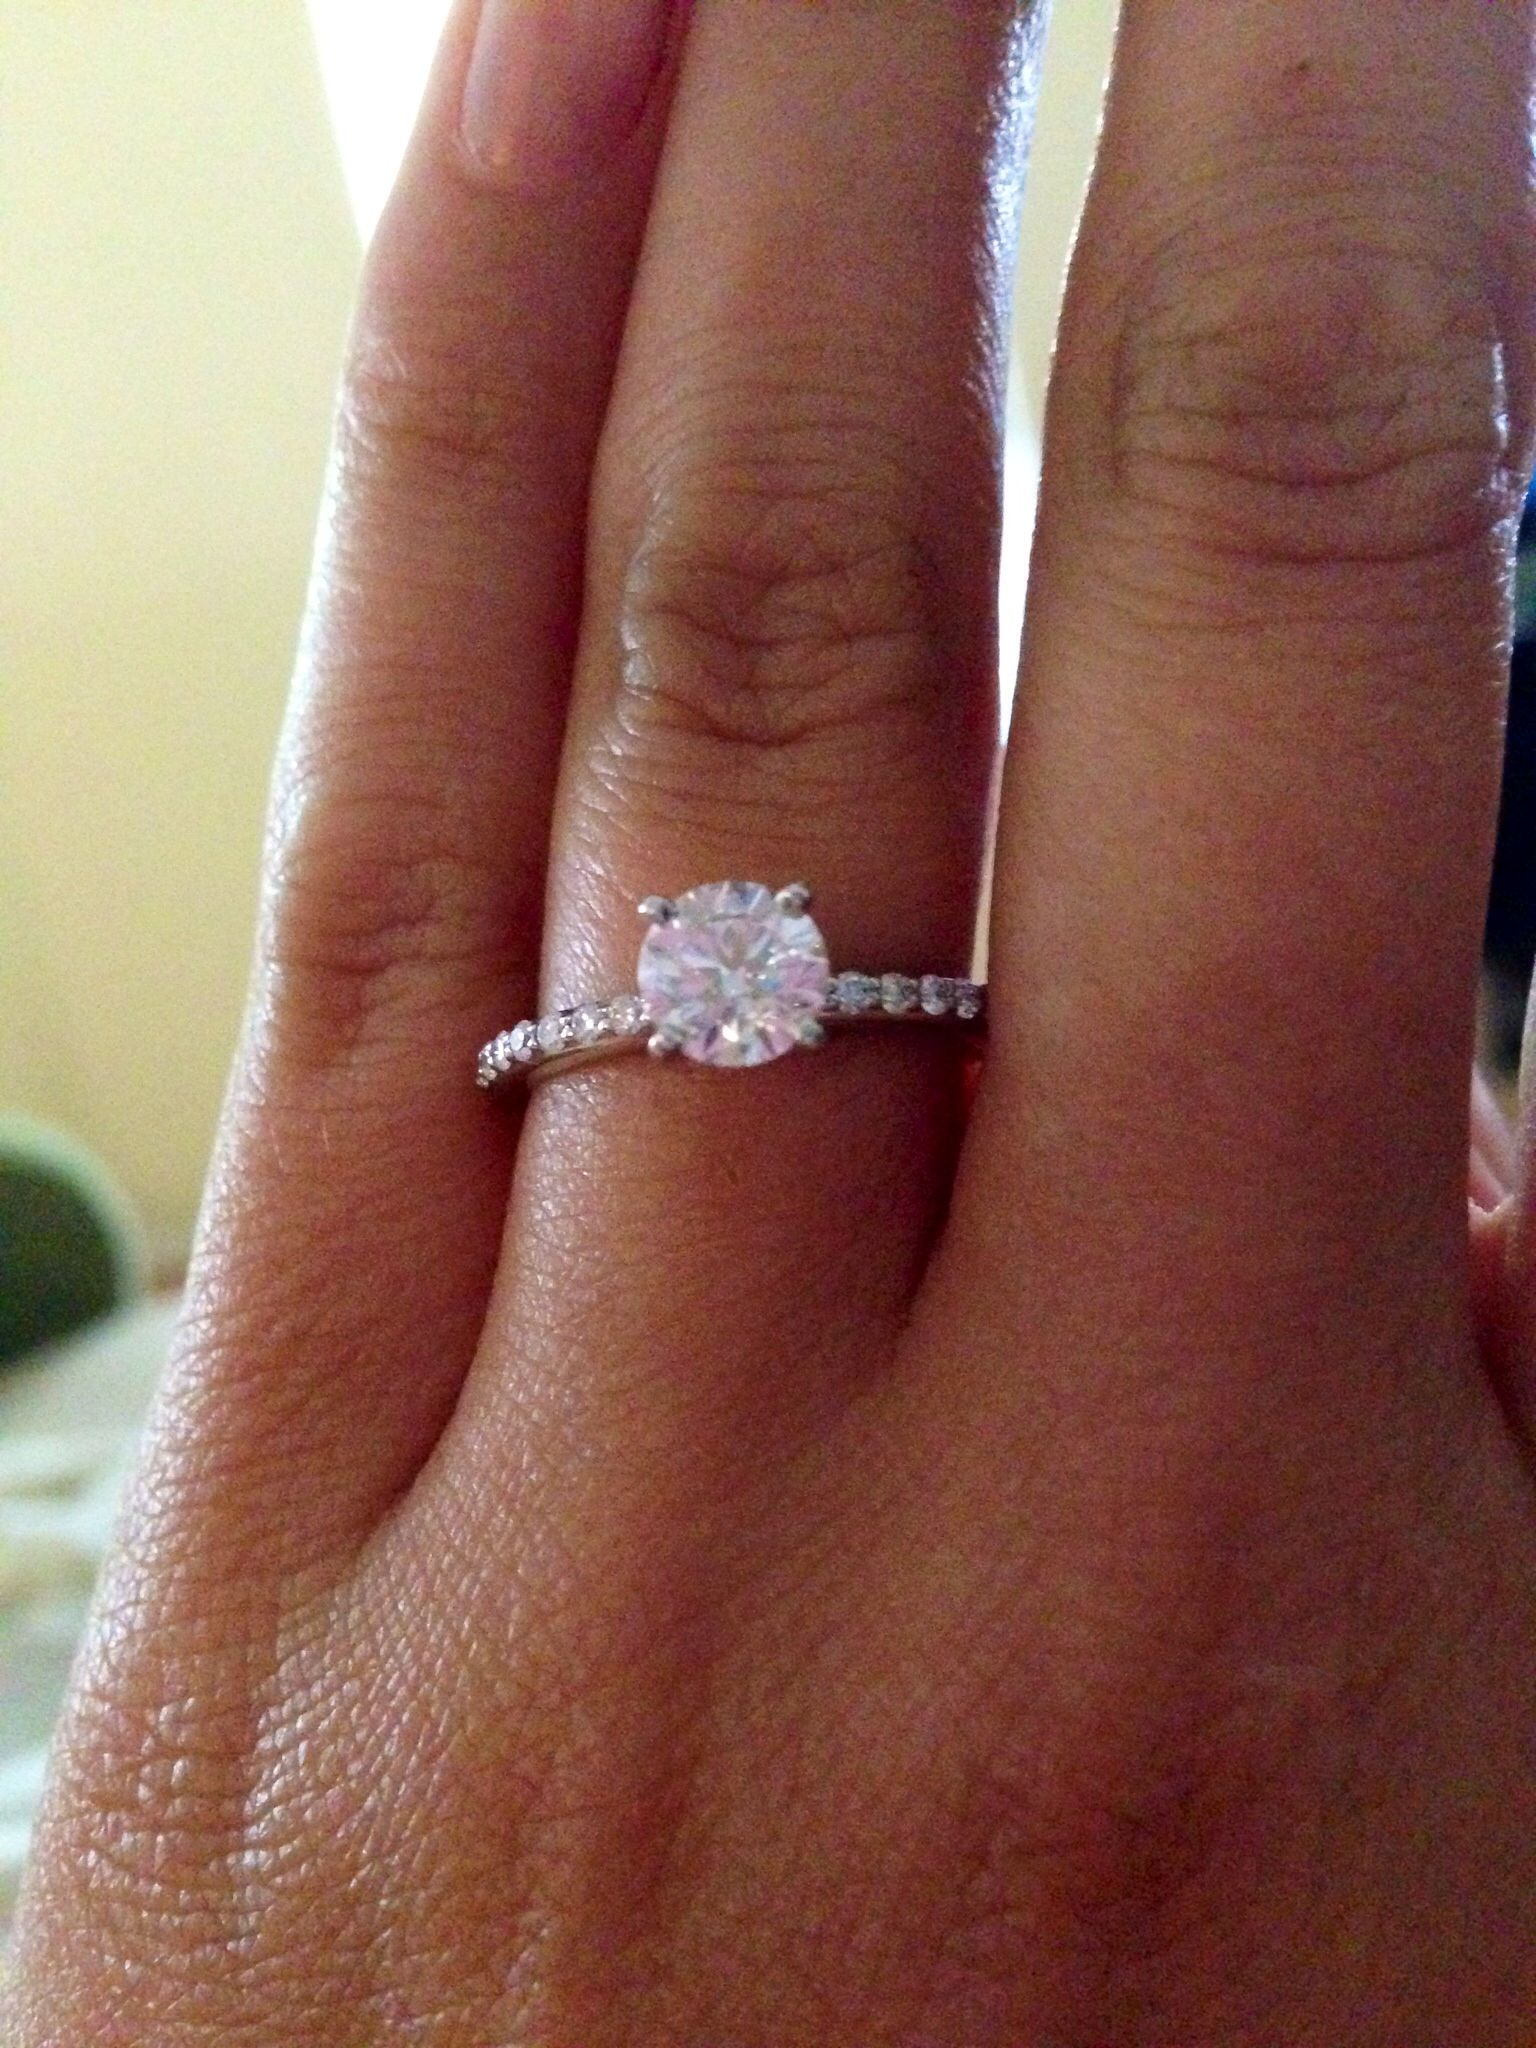 brilliant earth wedding bands My Brilliant Earth engagement ring I love it So sparkly